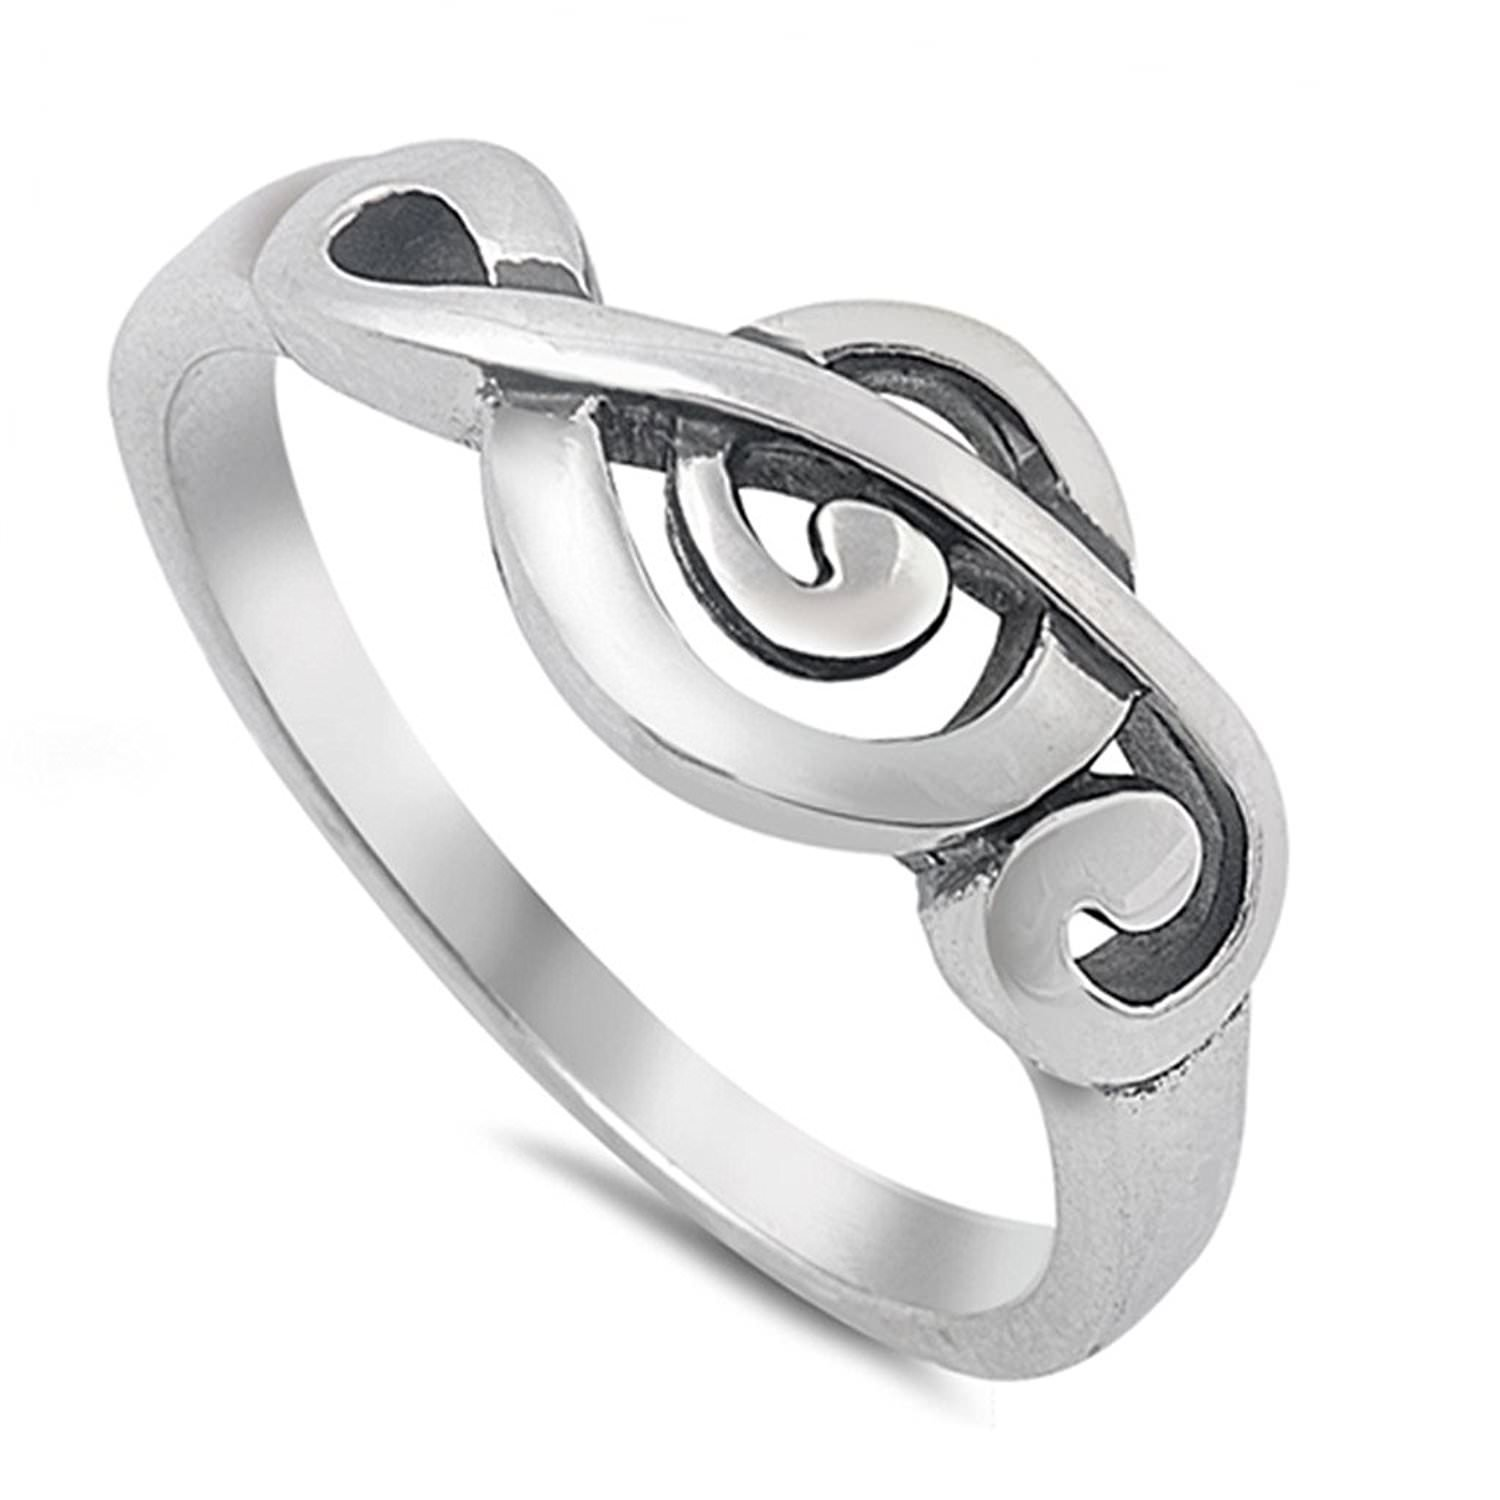 Amazon.com  Musical Symbol Treble Clef Ring 925 Sterling Silver Vintage  Style Jewelry Sizes 4-10  Jewelry f71d22eb776b